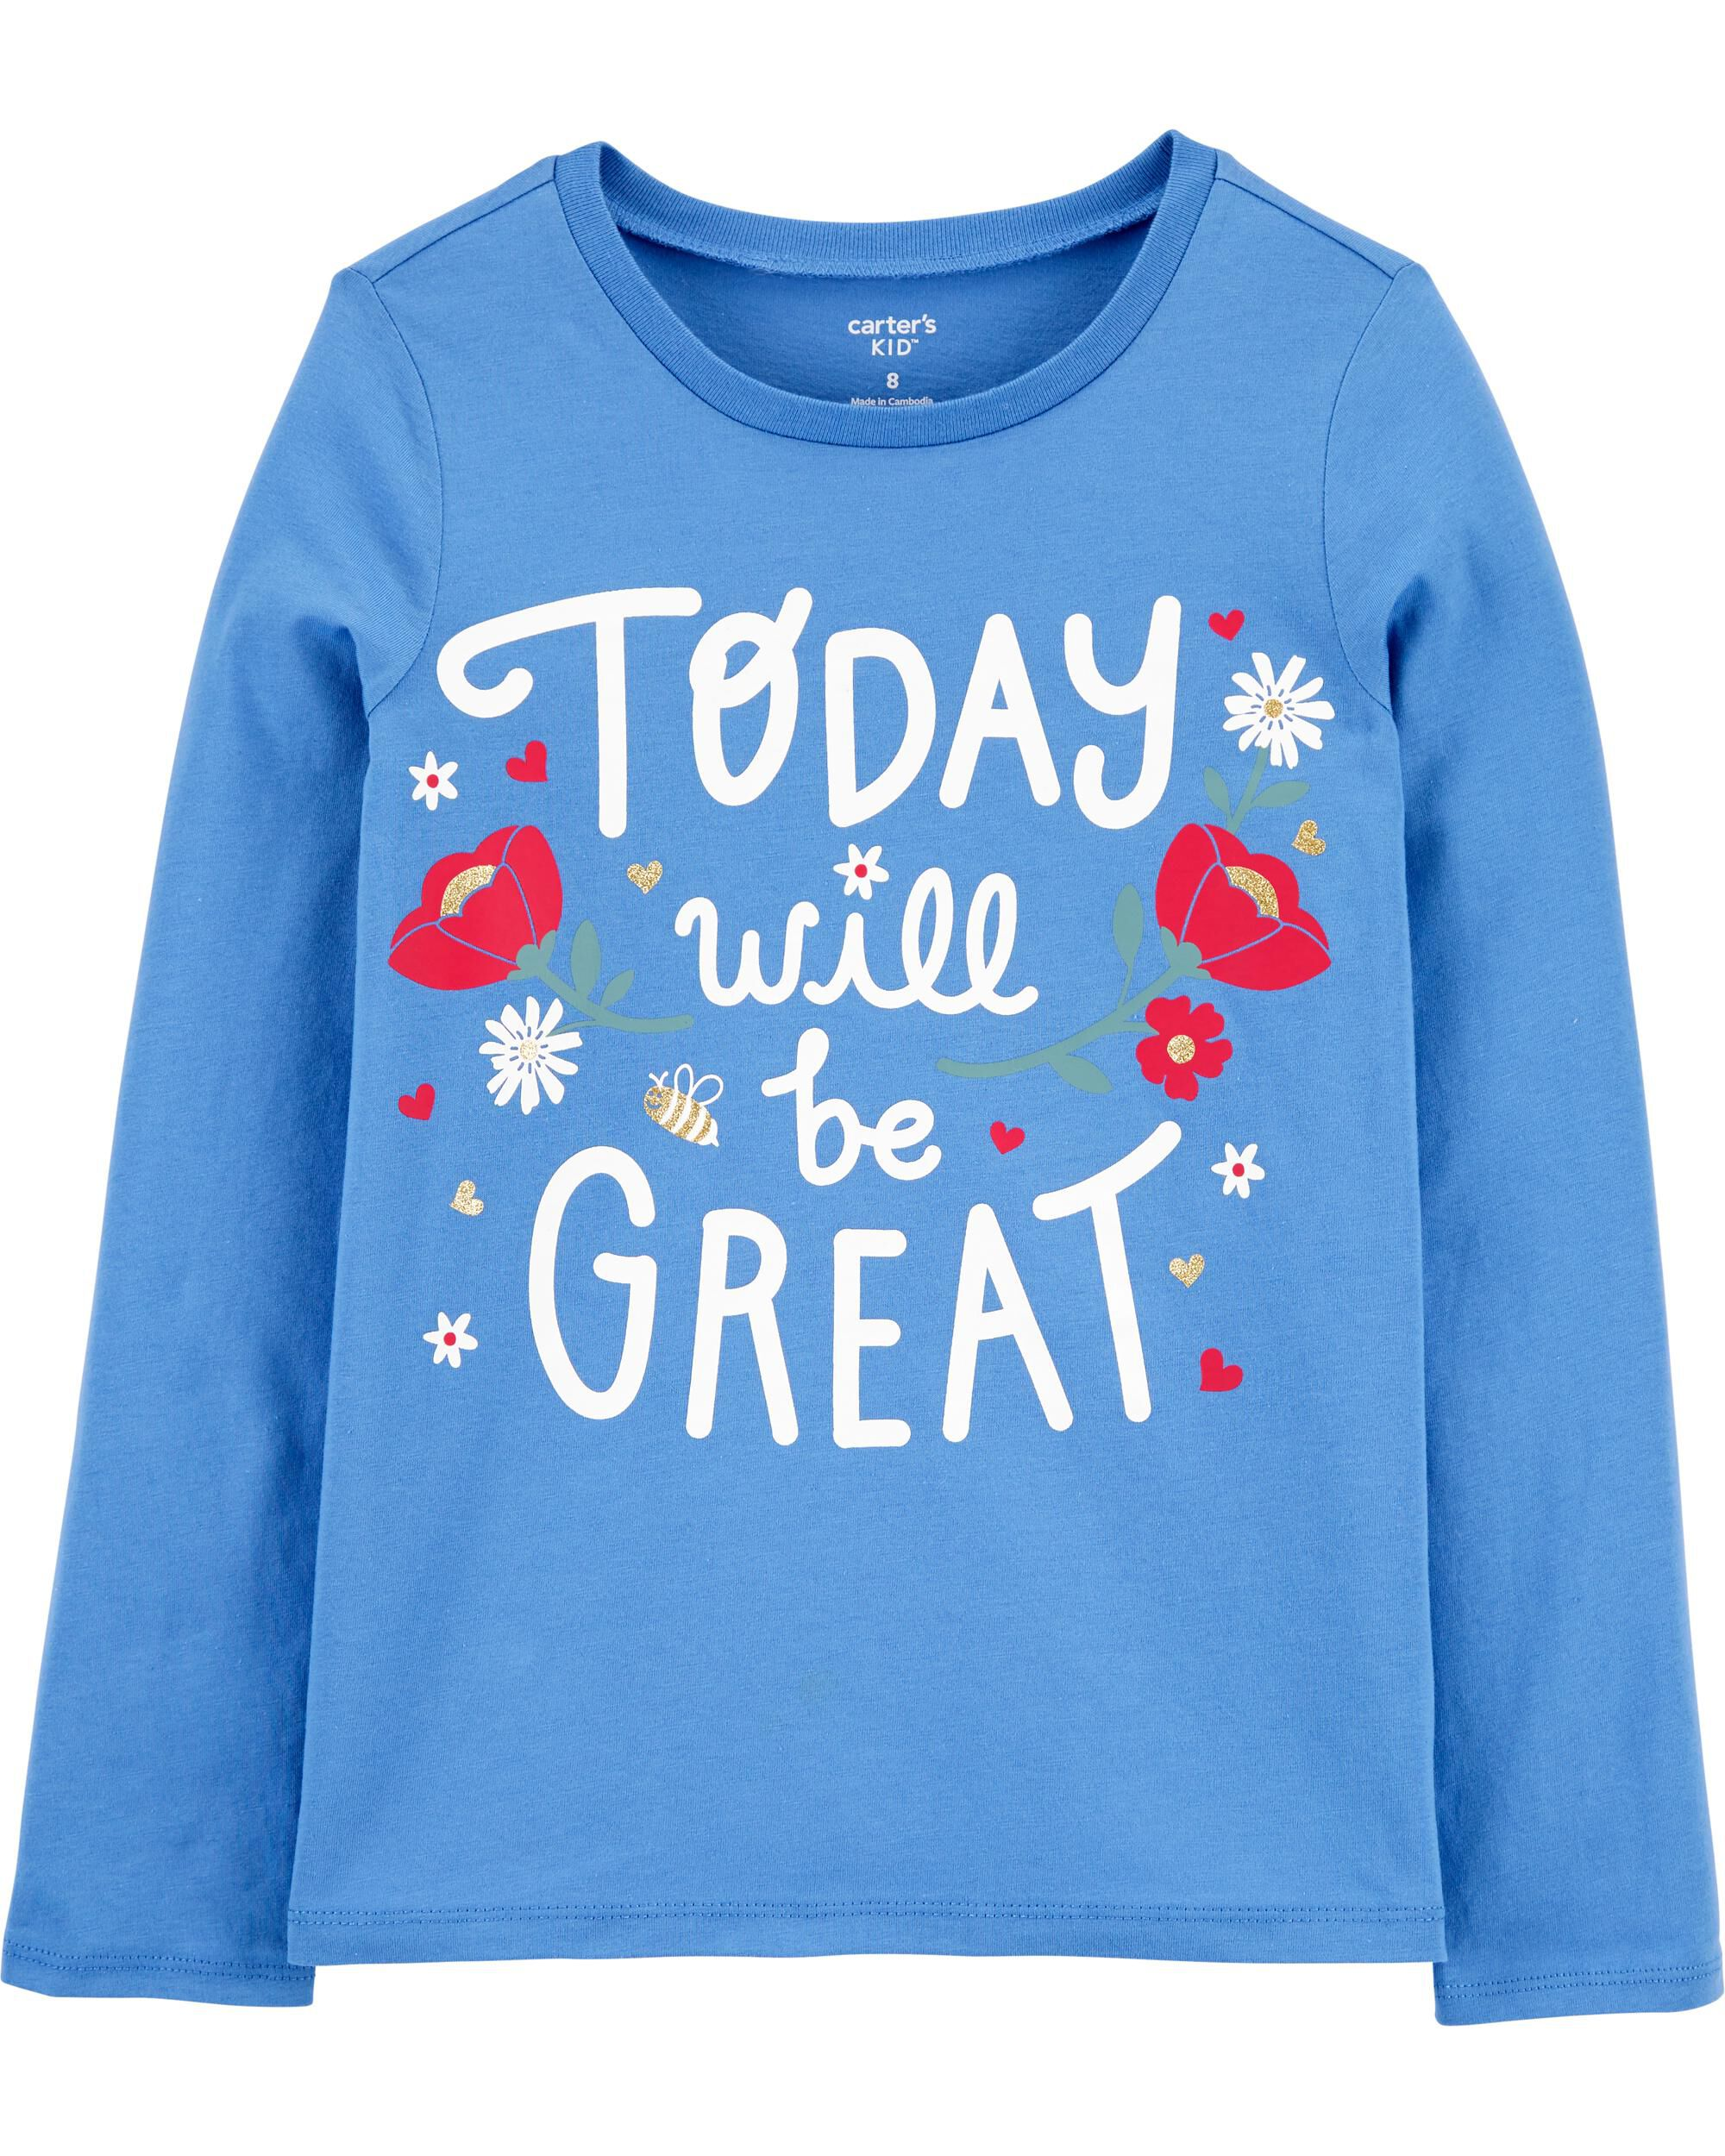 *CLEARANCE*Today Will Be Great Jersey Tee